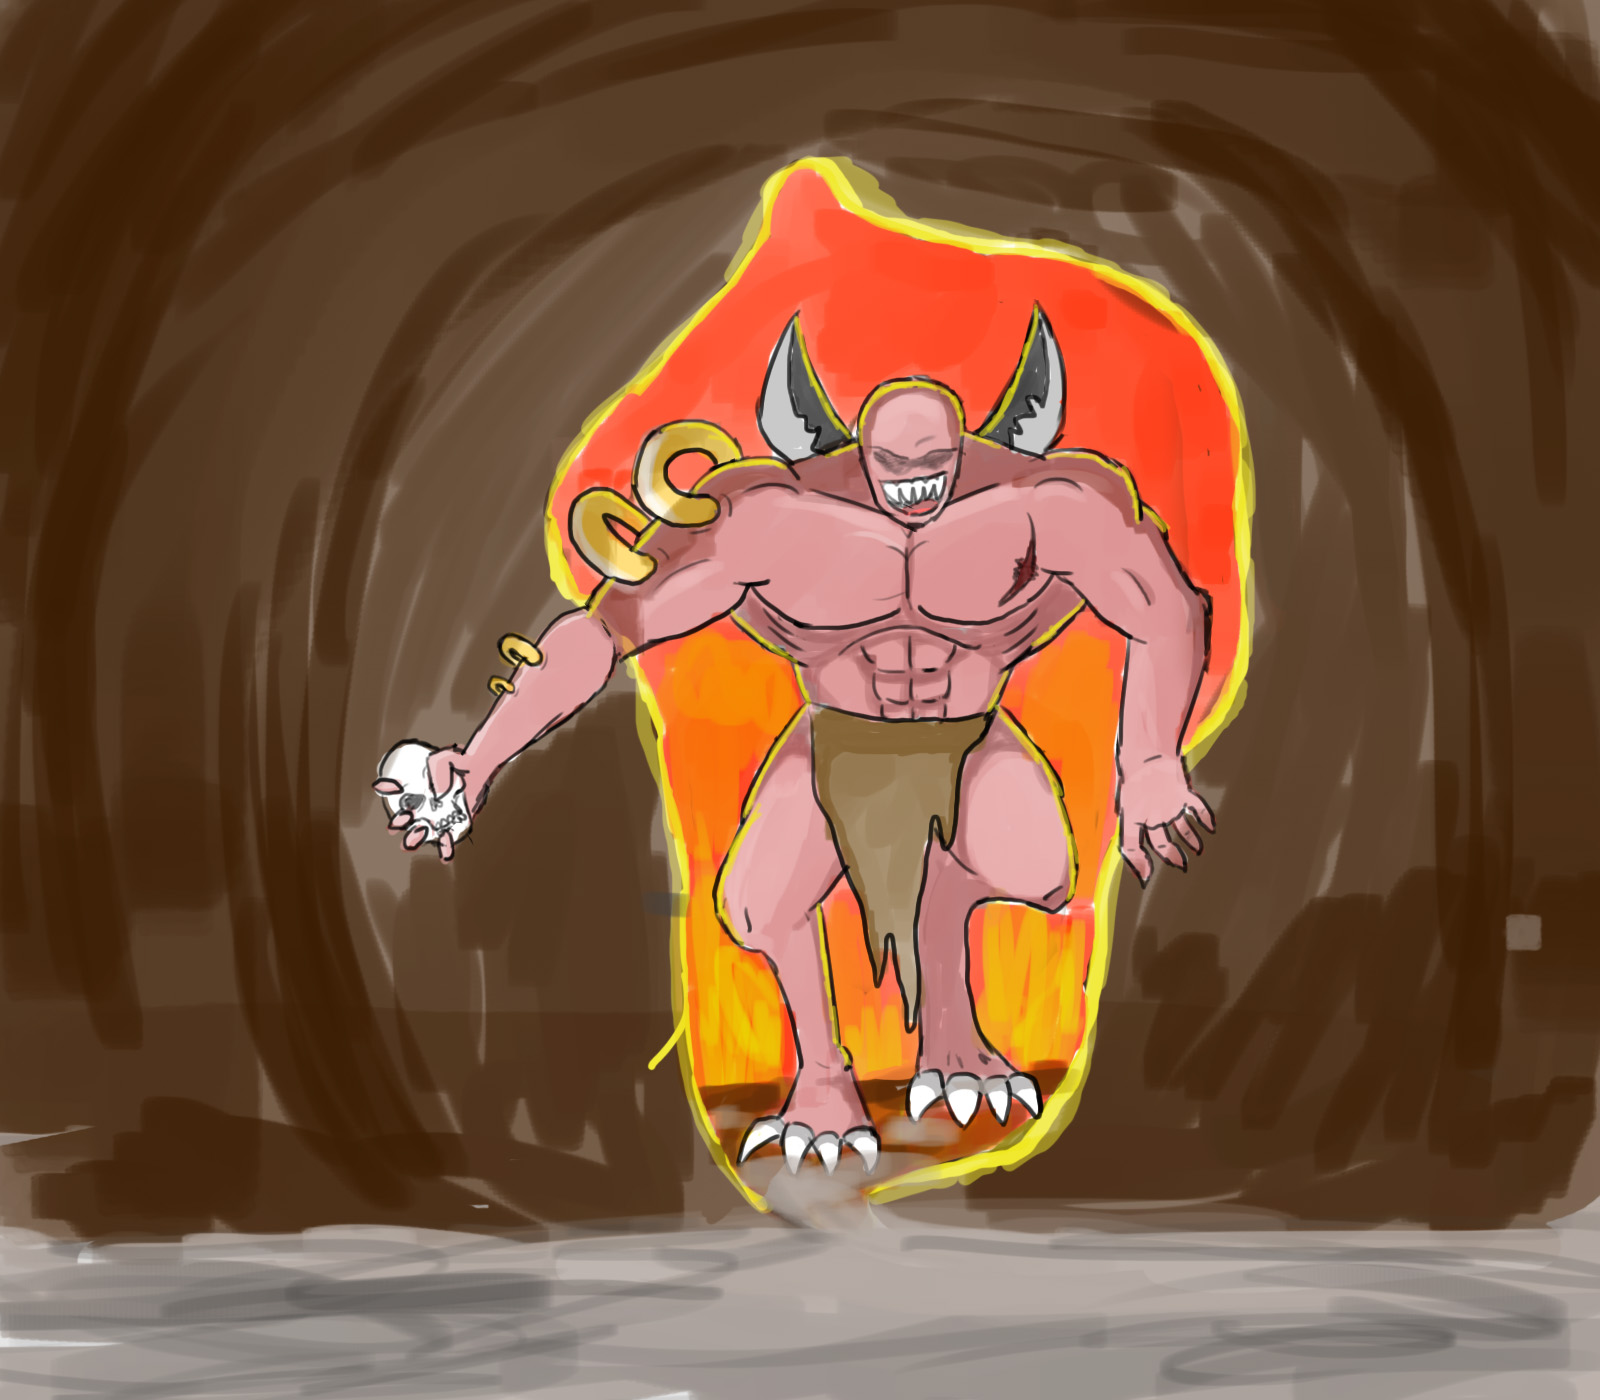 Beast, escaping hell